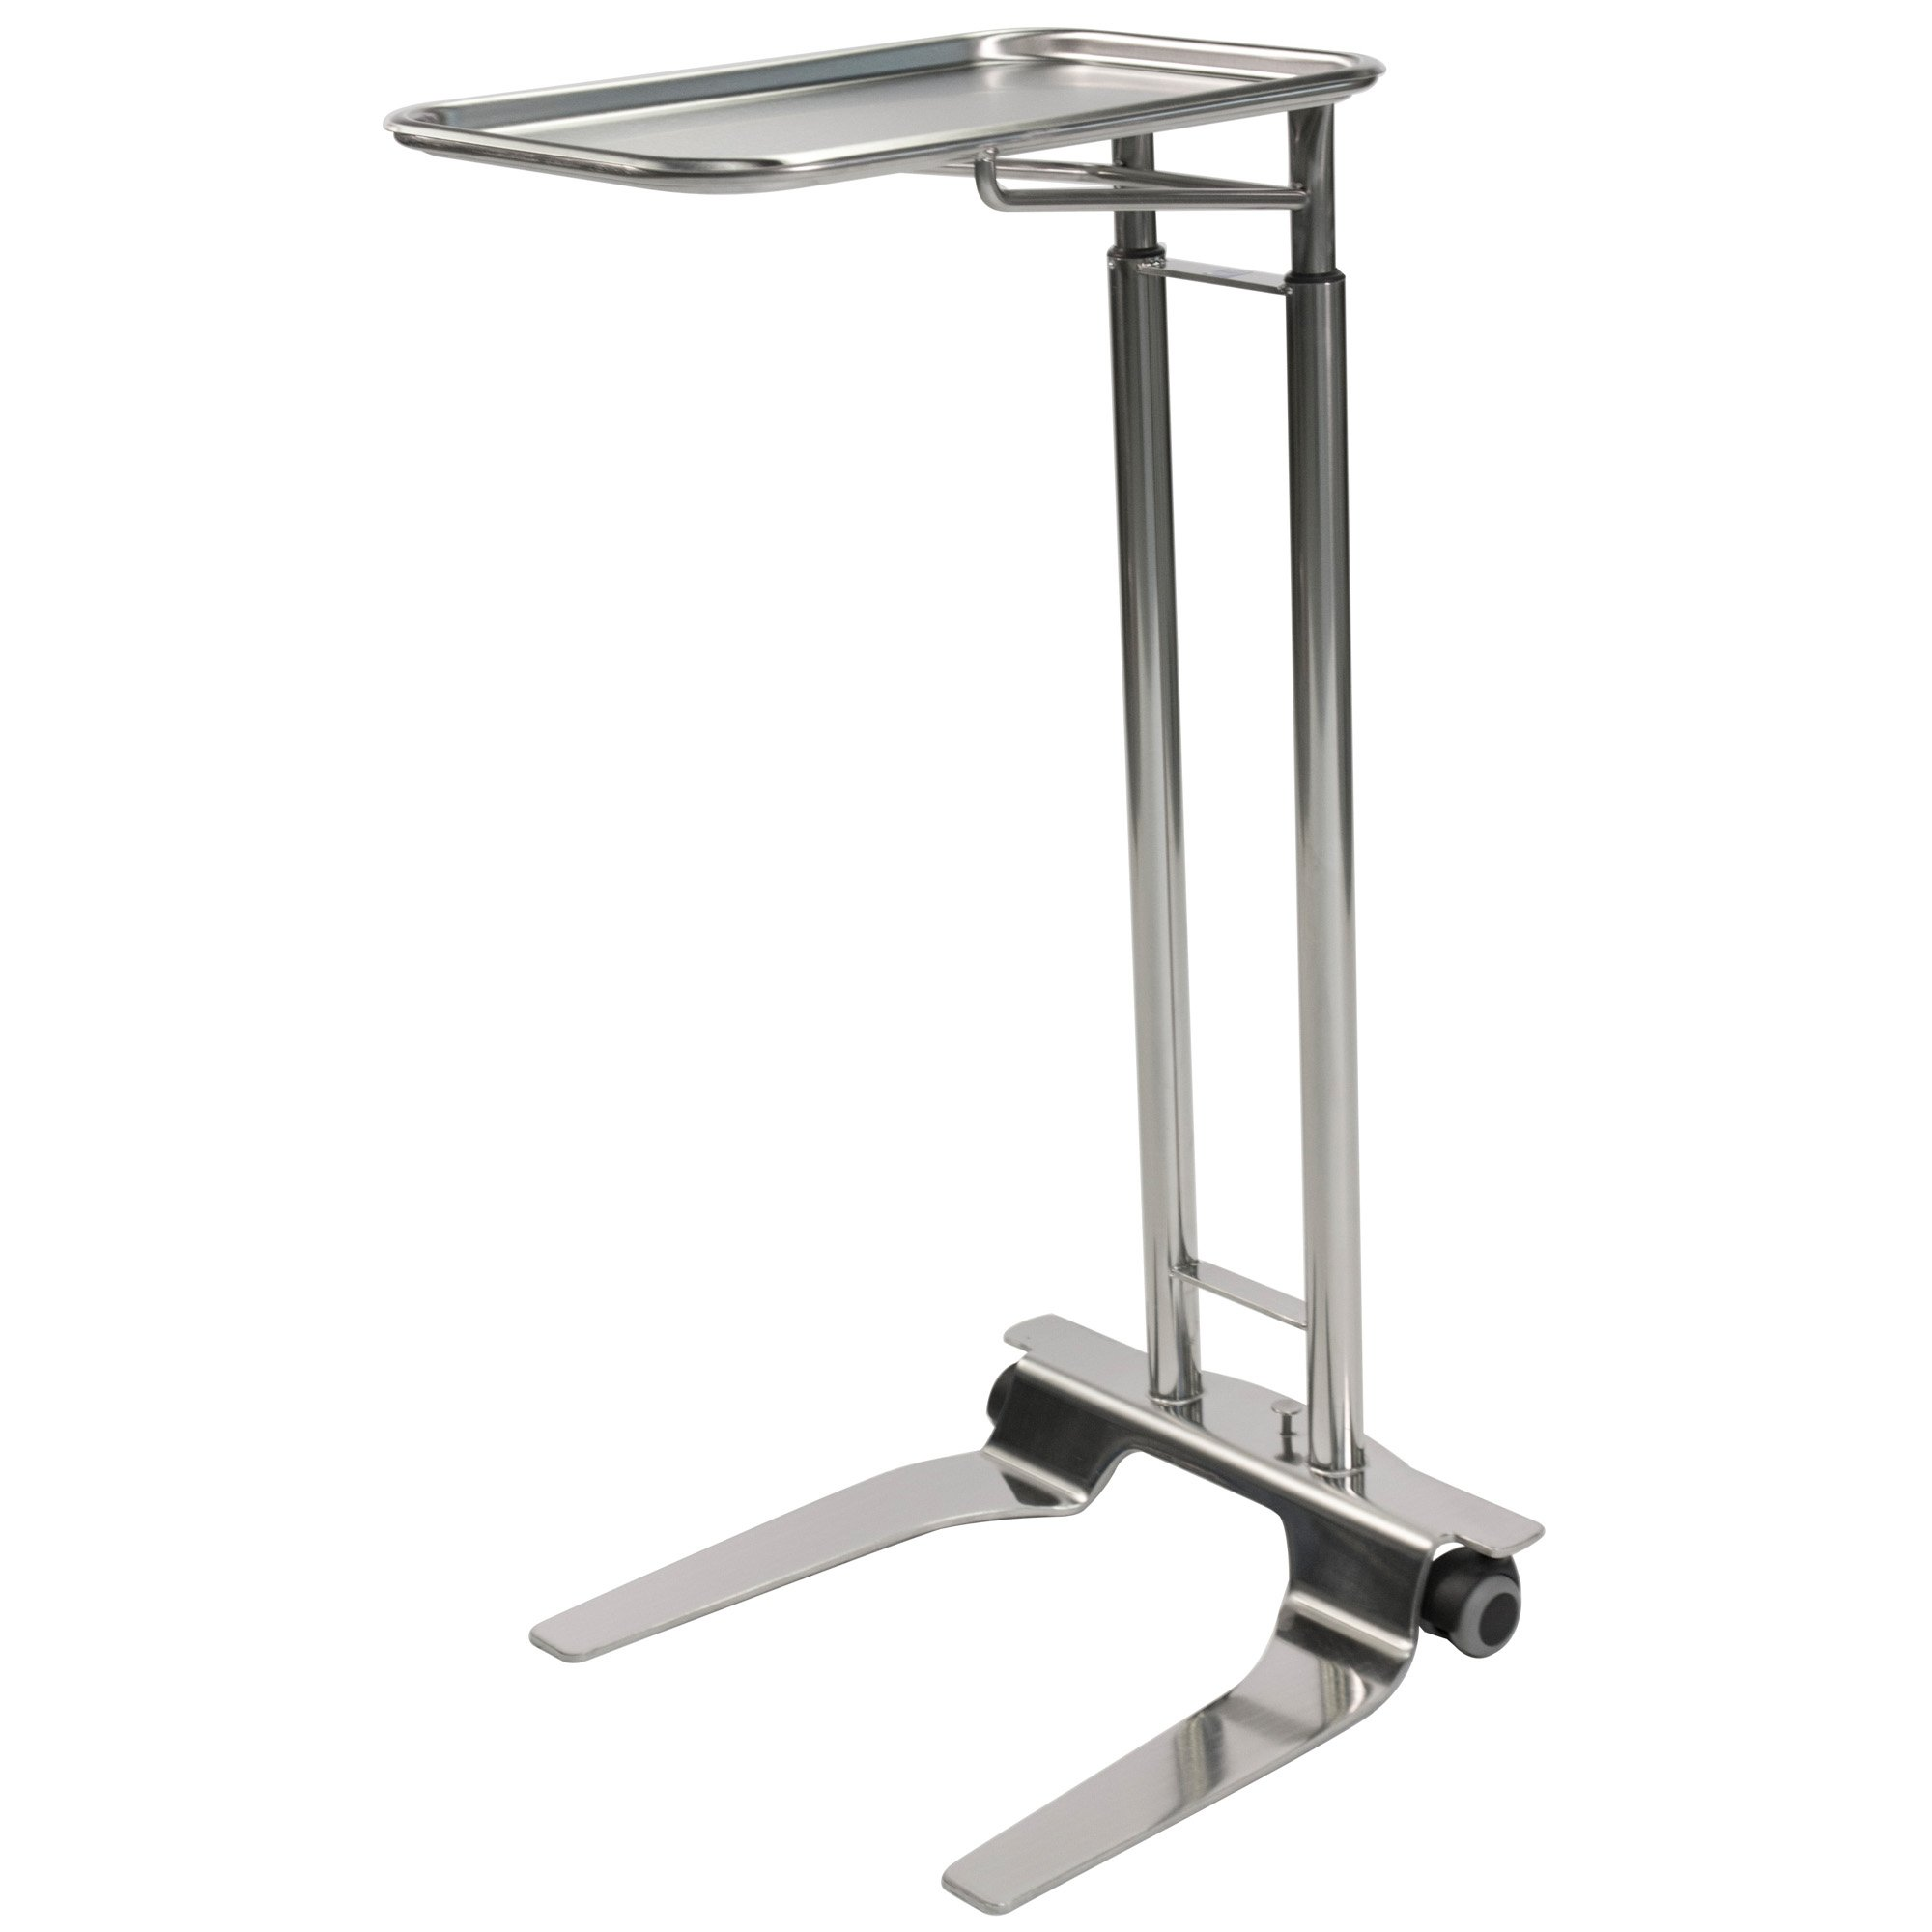 Pedigo SS Foot Operated Mayo Stand With 12 5/8